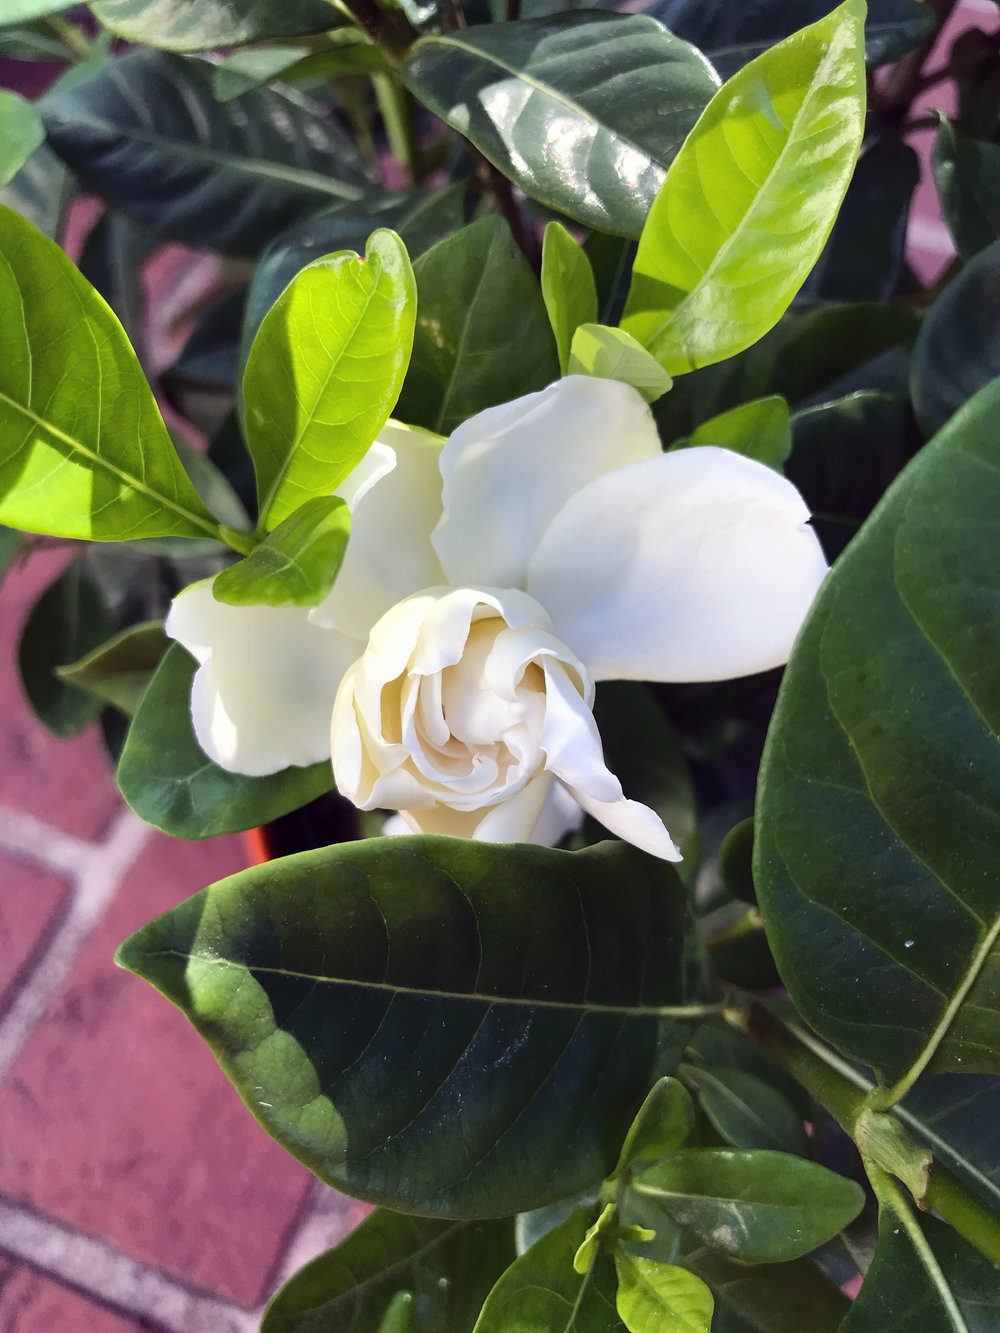 A Gardenia Flower Unfurling in the Garden of Botanical Watercolor Artist Anne Butera